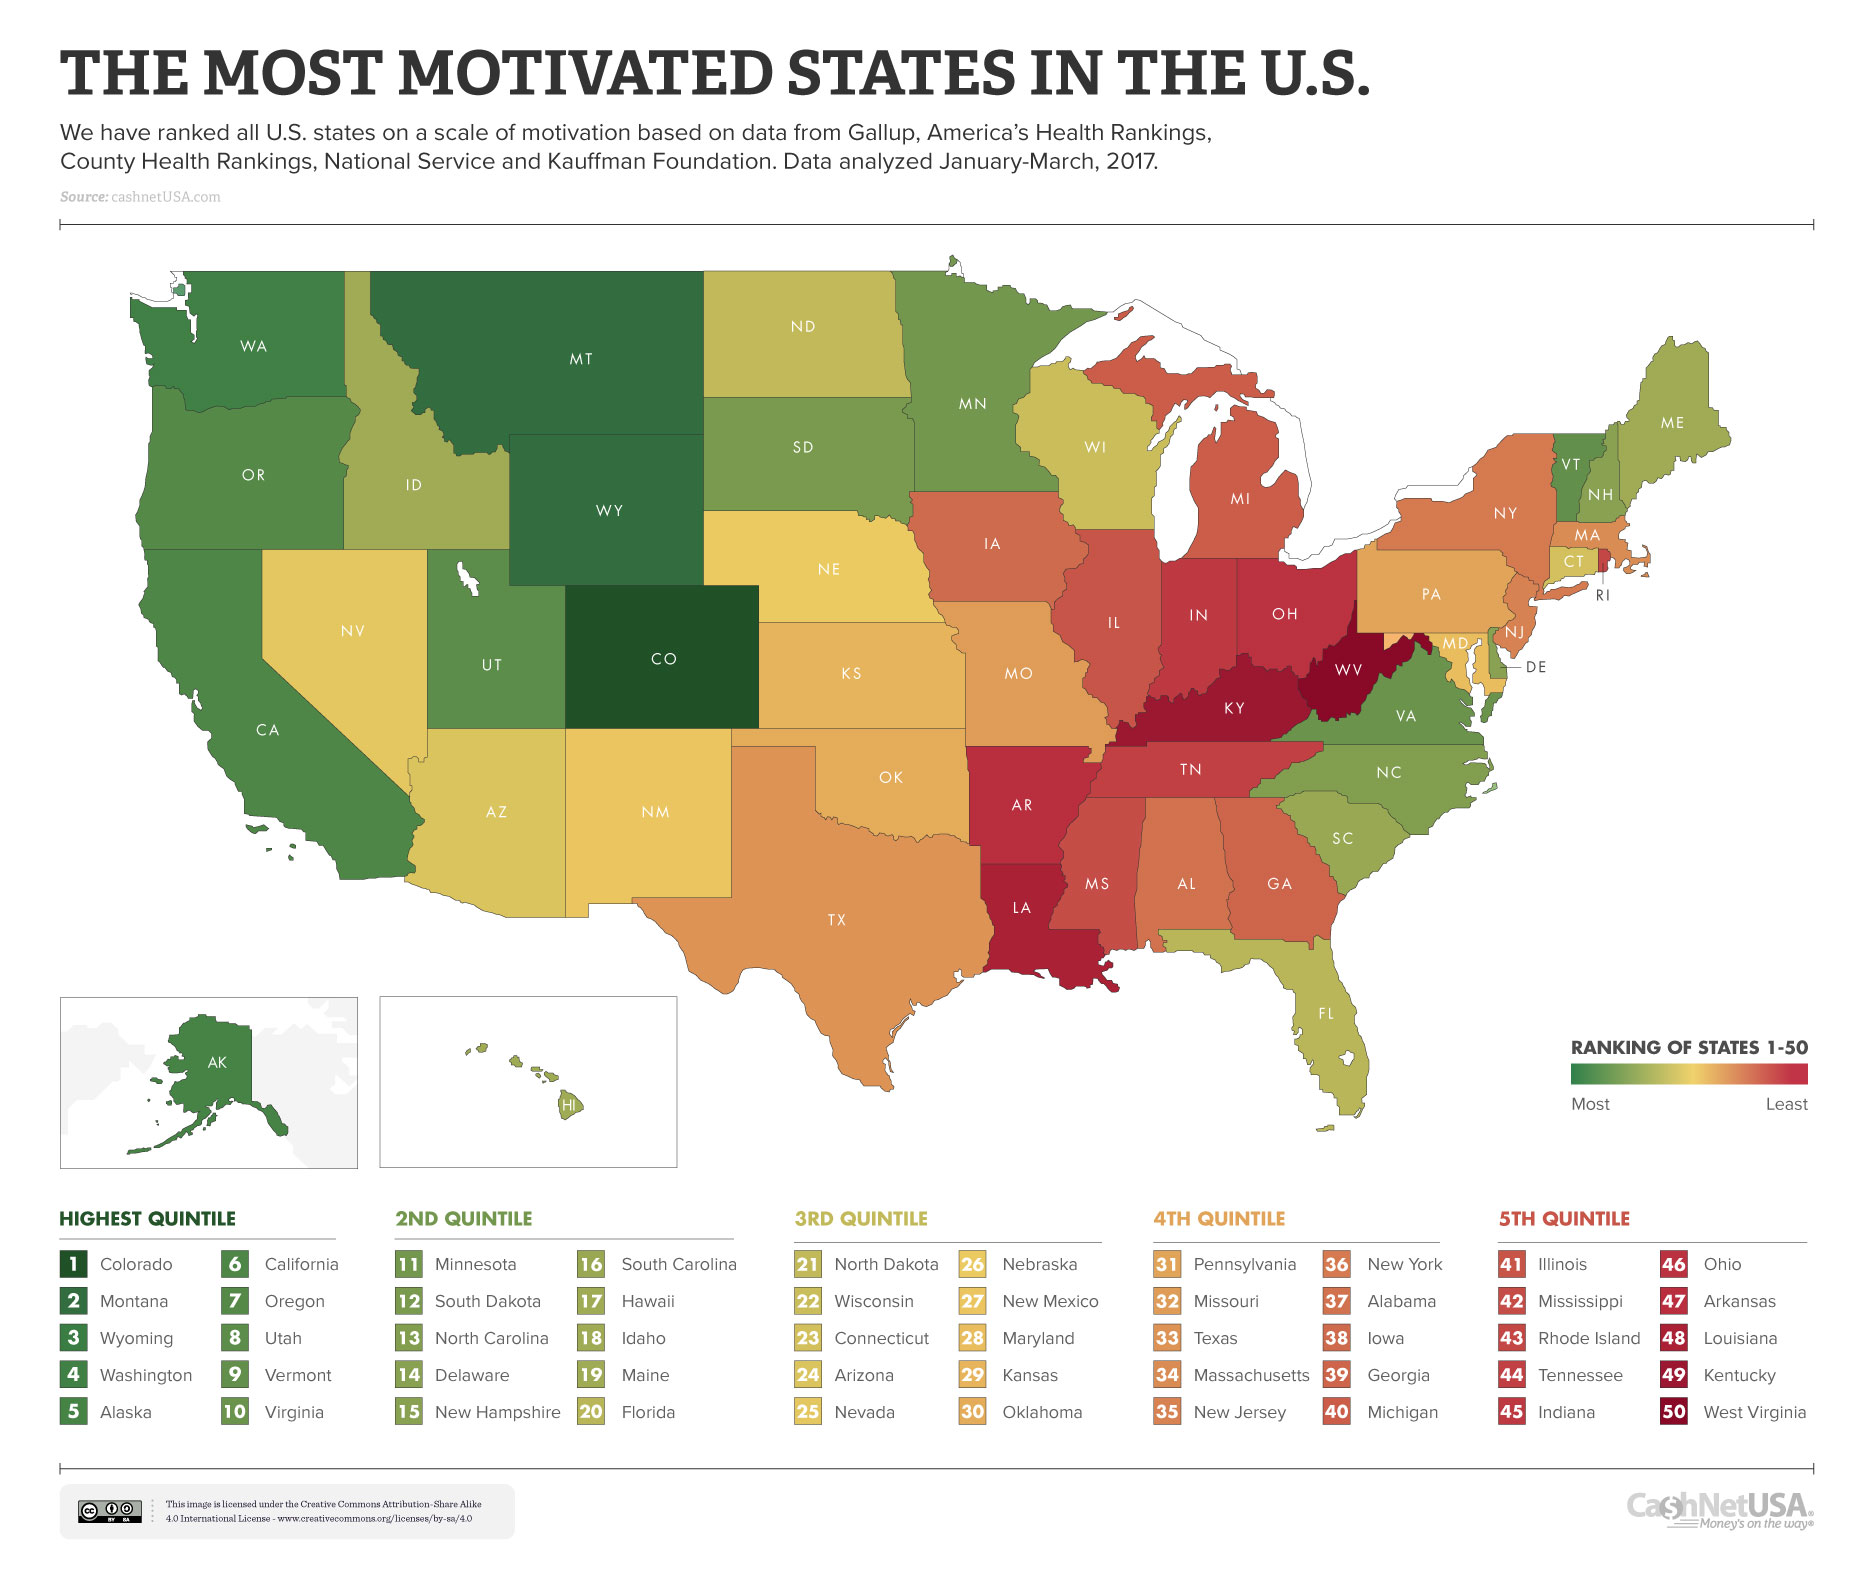 These Are the Most Motivated States in the U.S.